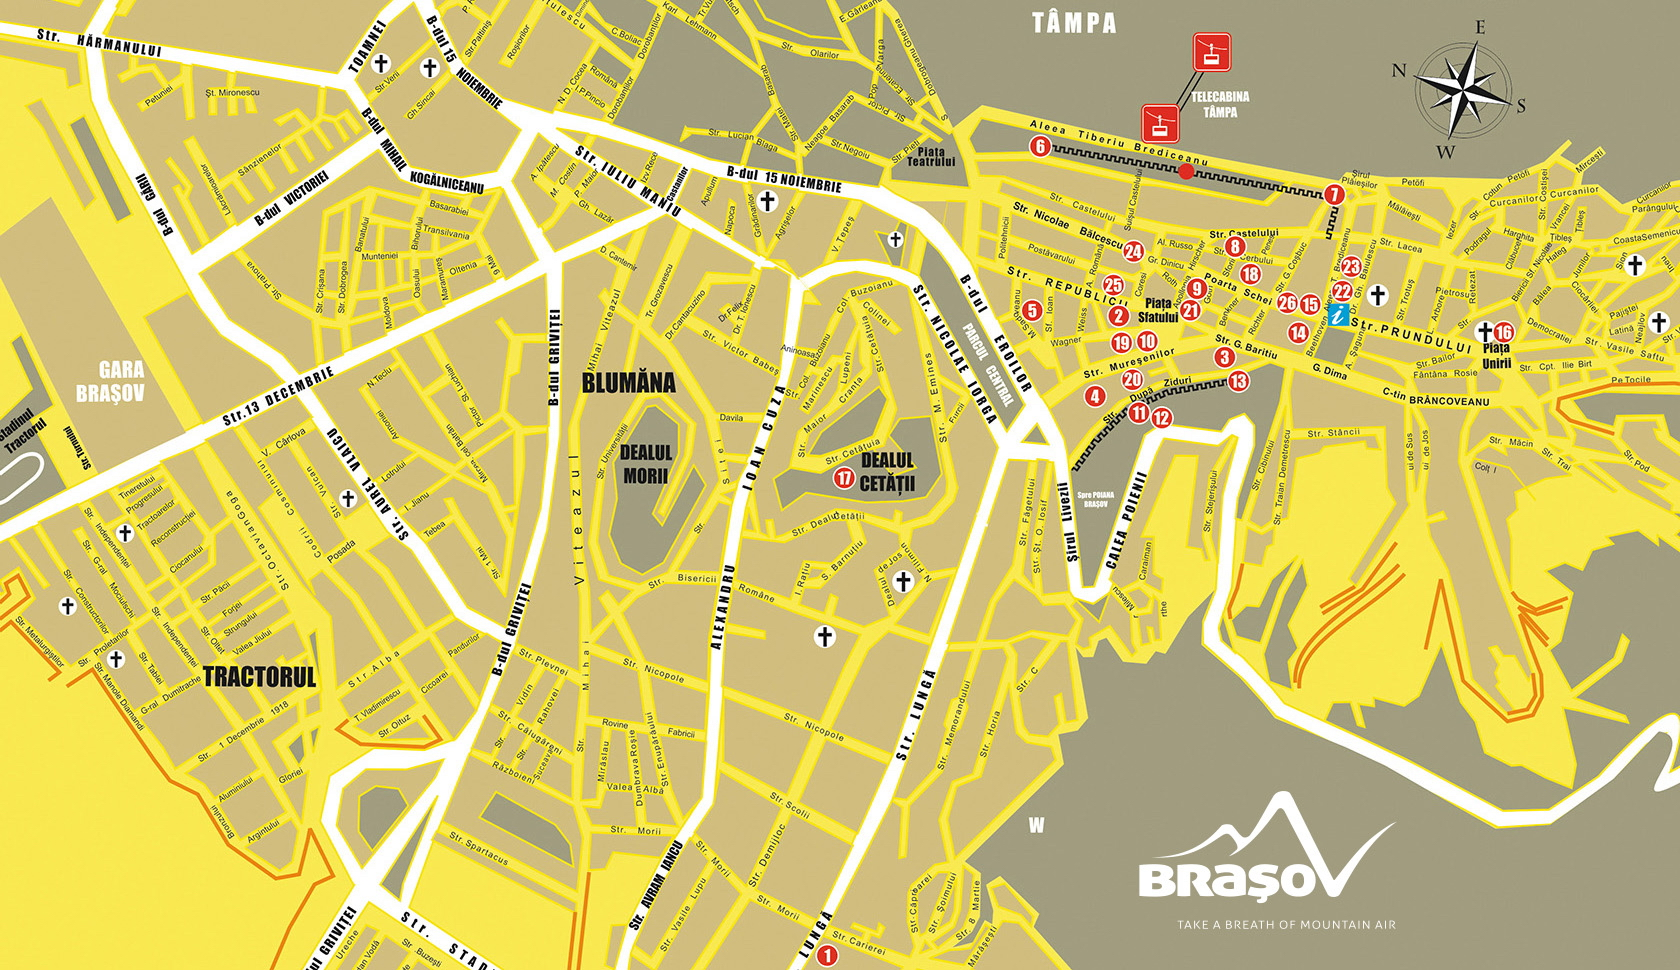 Brasov - Tourist Map of Brașov City